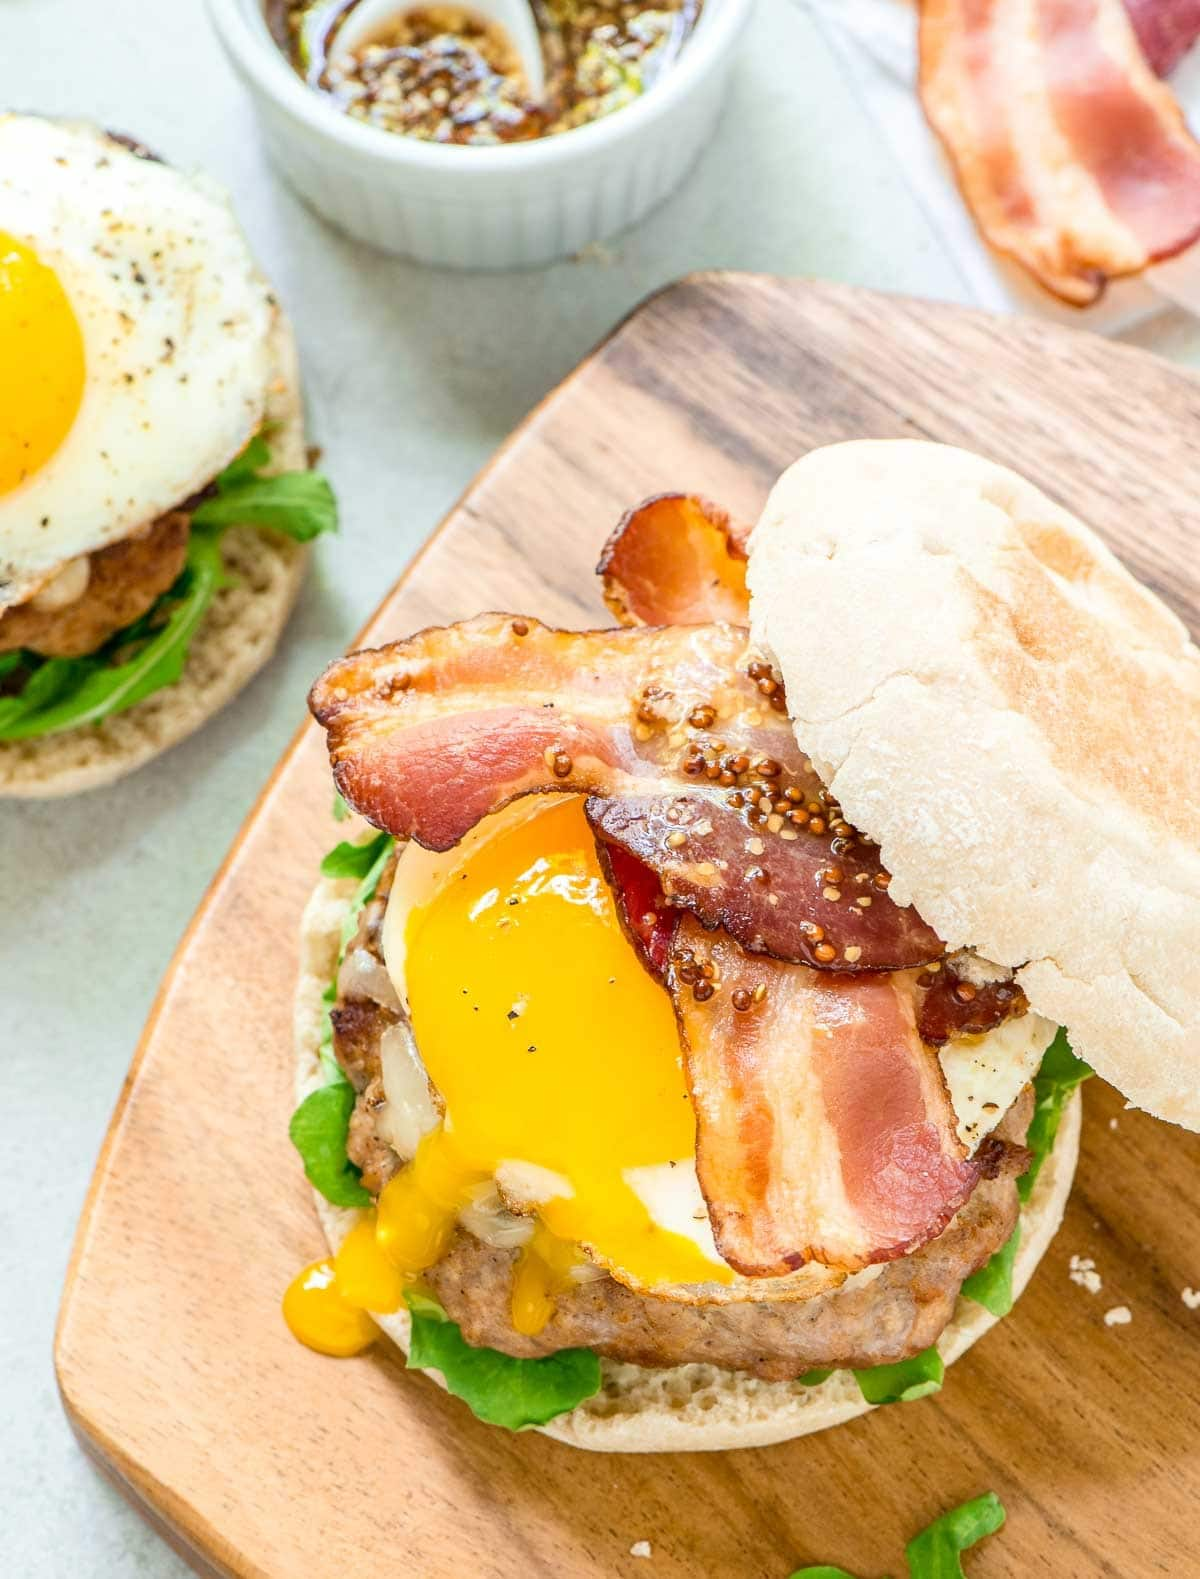 Maple Bacon Turkey Burgers — juicy turkey patty with a sweet, smoky maple flavor, crispy bacon, gooey cheese, and a fried egg. Perfect for summer grilling or even as a breakfast burger! @wellplated